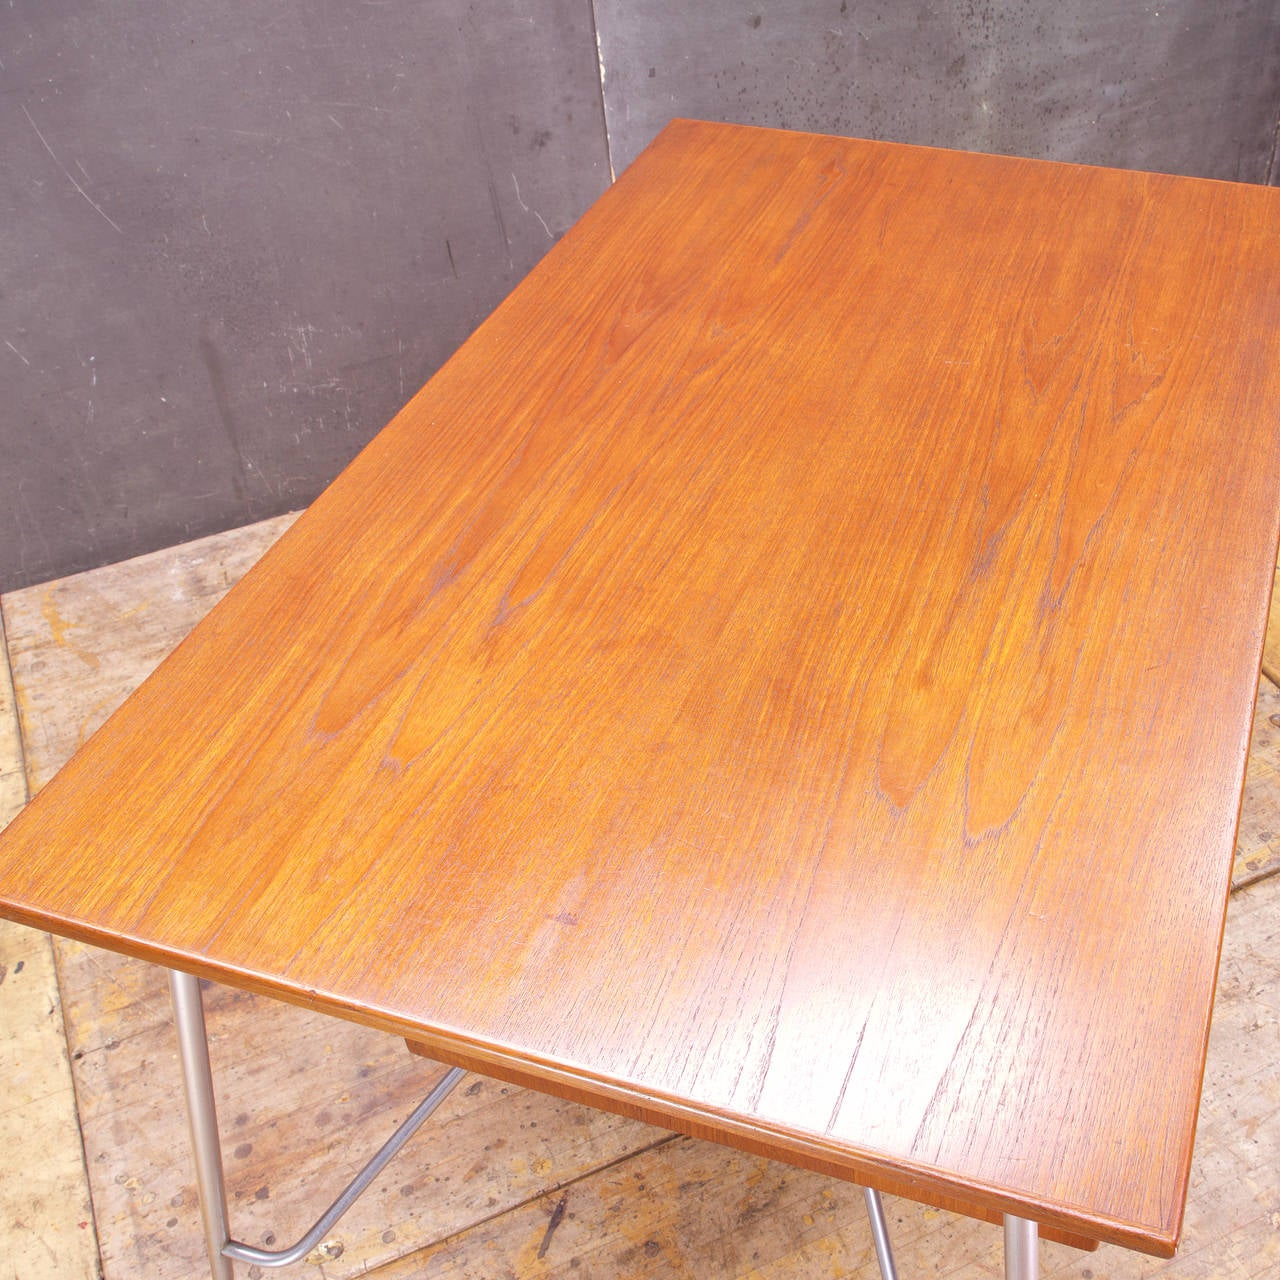 Mid-20th Century Rare Borge Mogensen Teak and Metal Desk For Sale